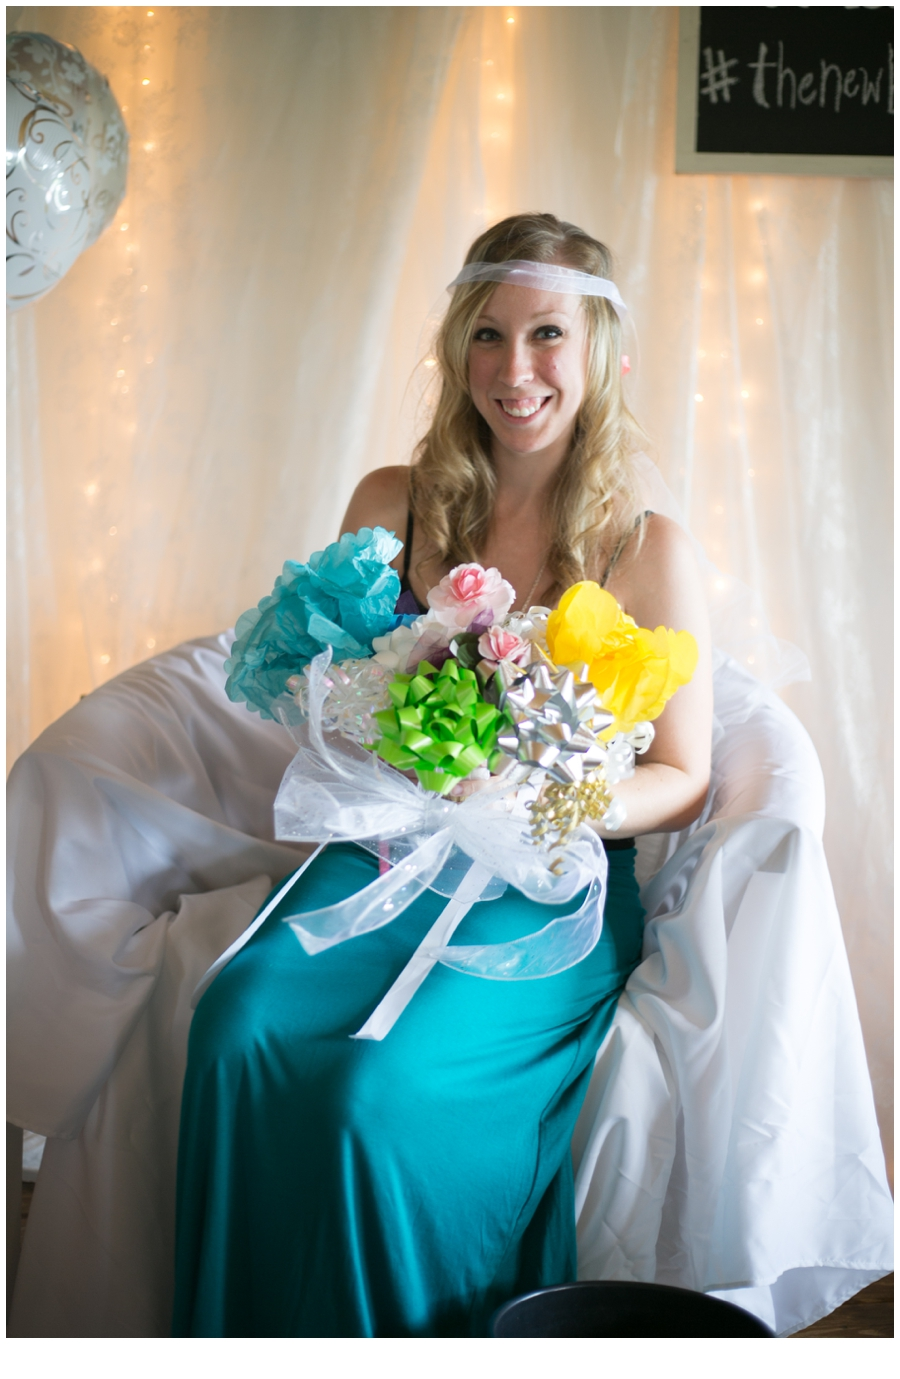 brittany-hanke-surprise-bridal-shower-fiore-winery-living-radiant-photography_0034.jpg